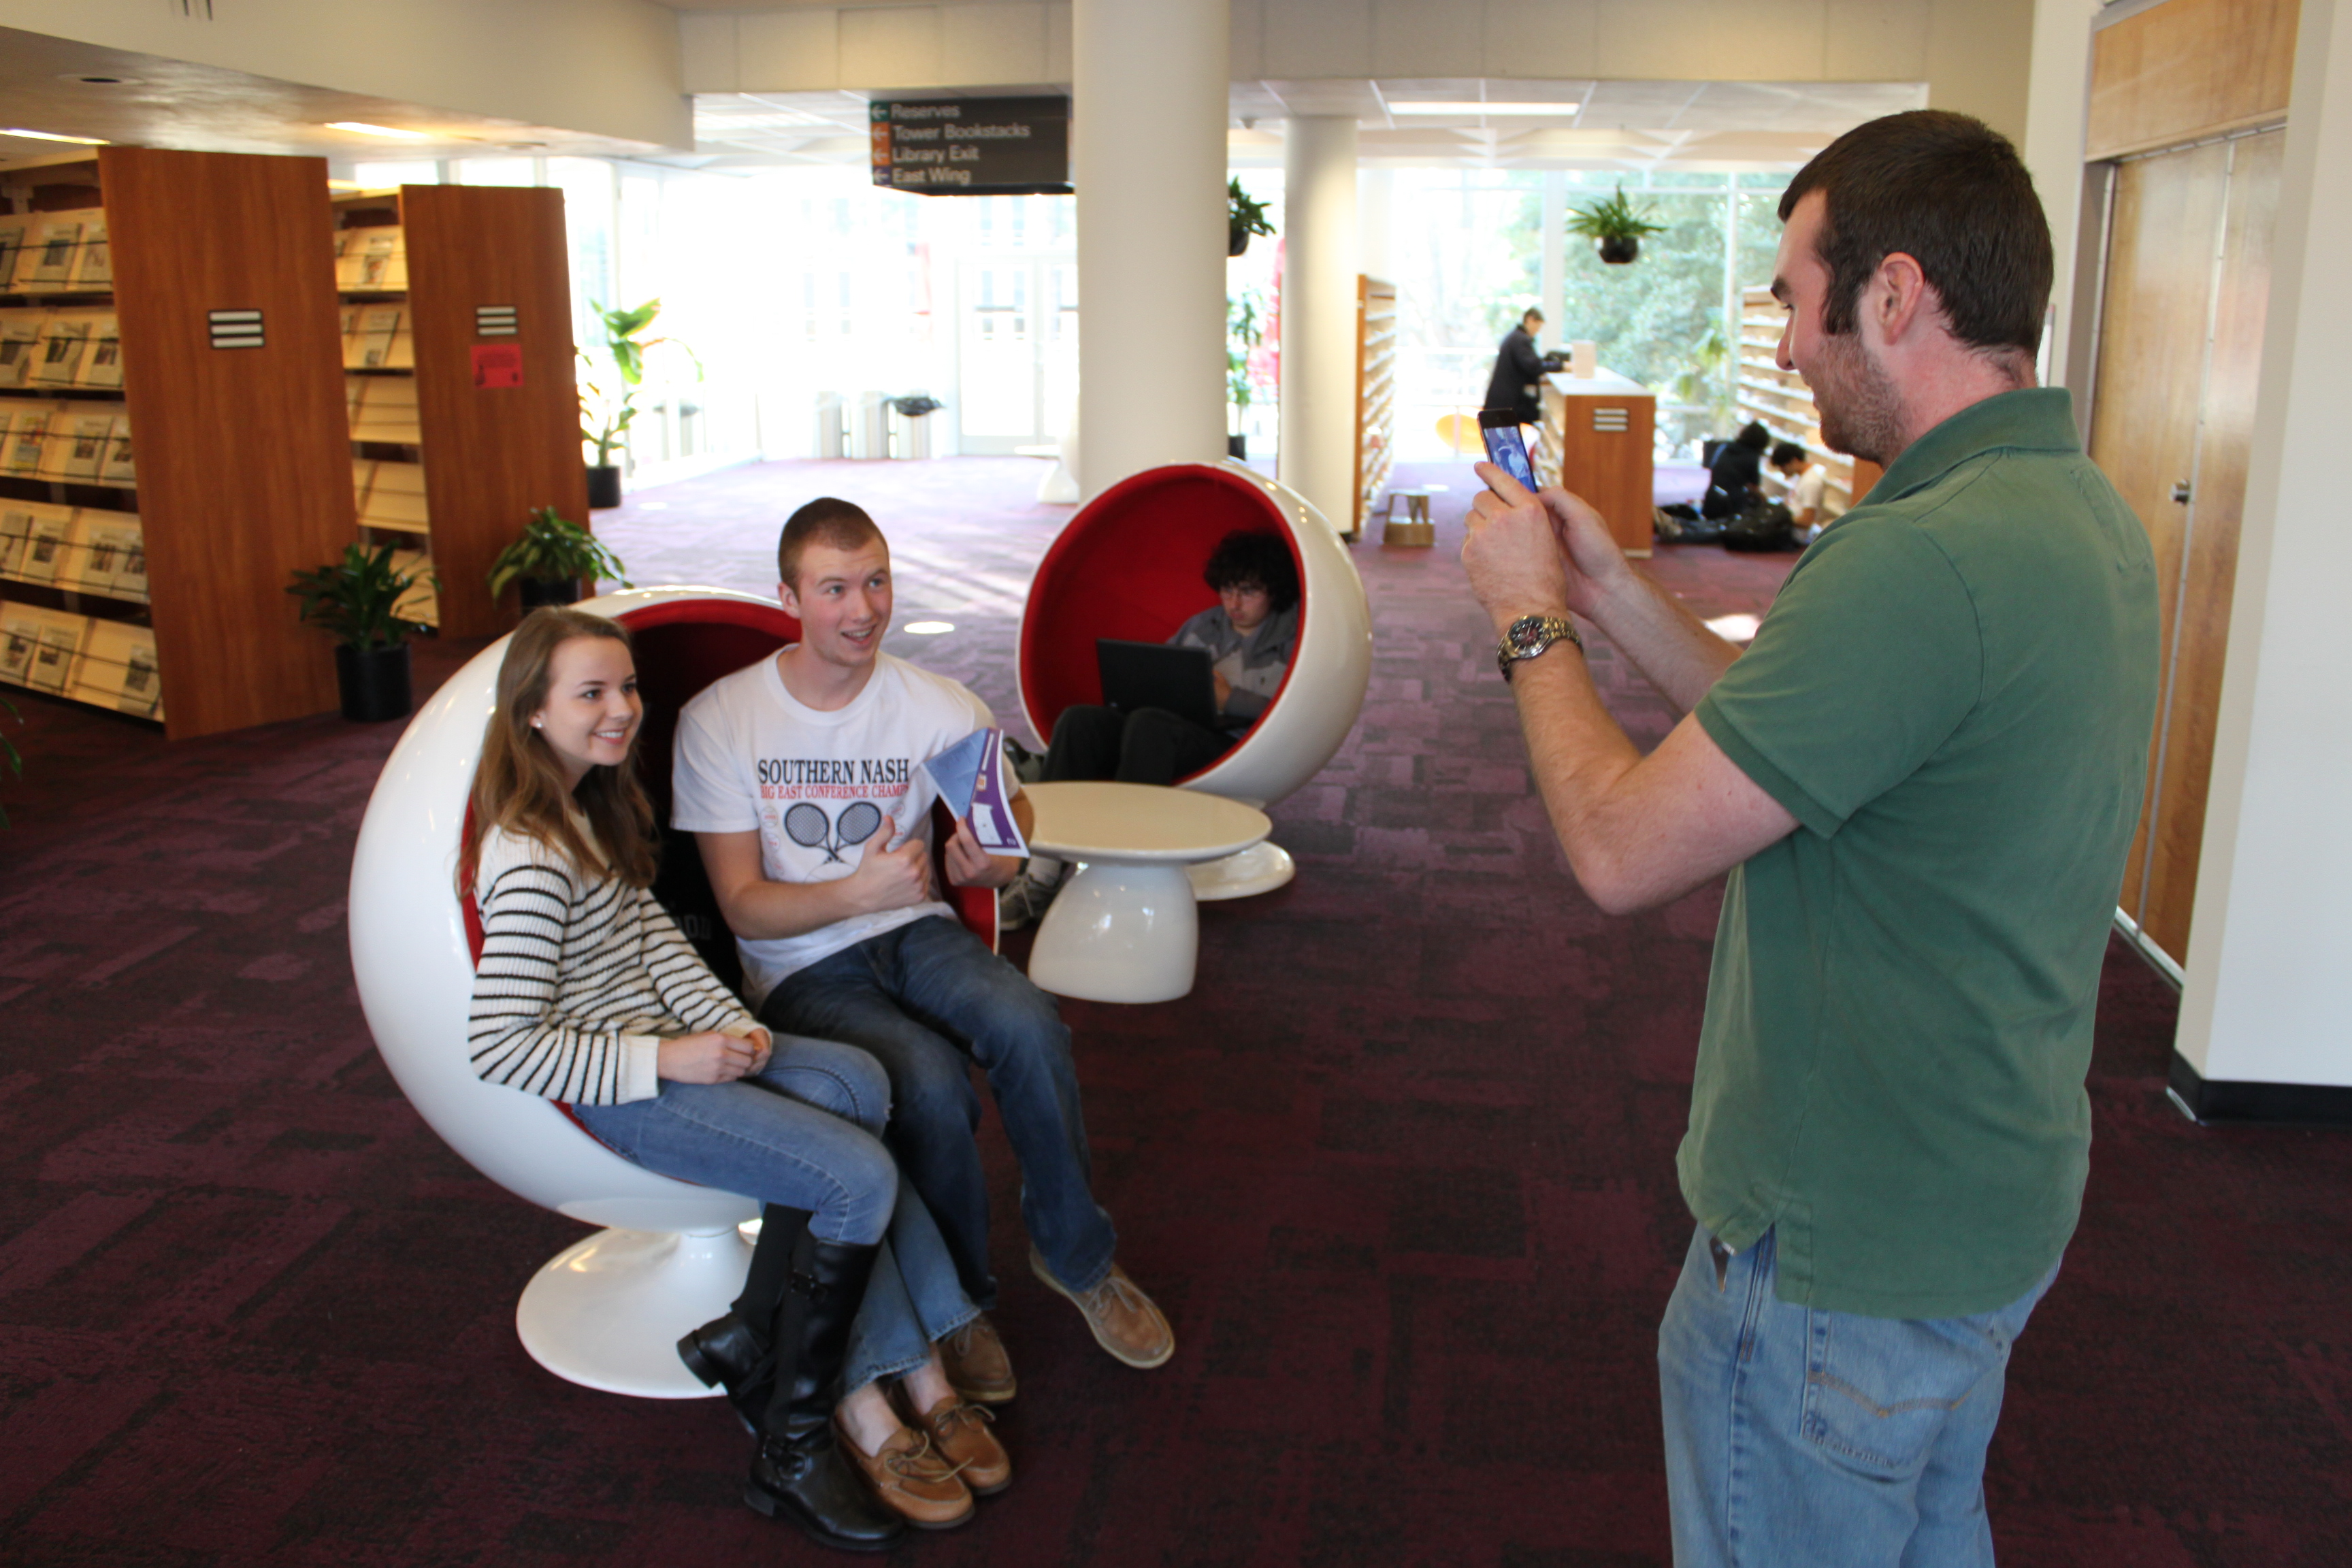 NCSU students taking a photo in the ball chairs during a scavenger hunt.